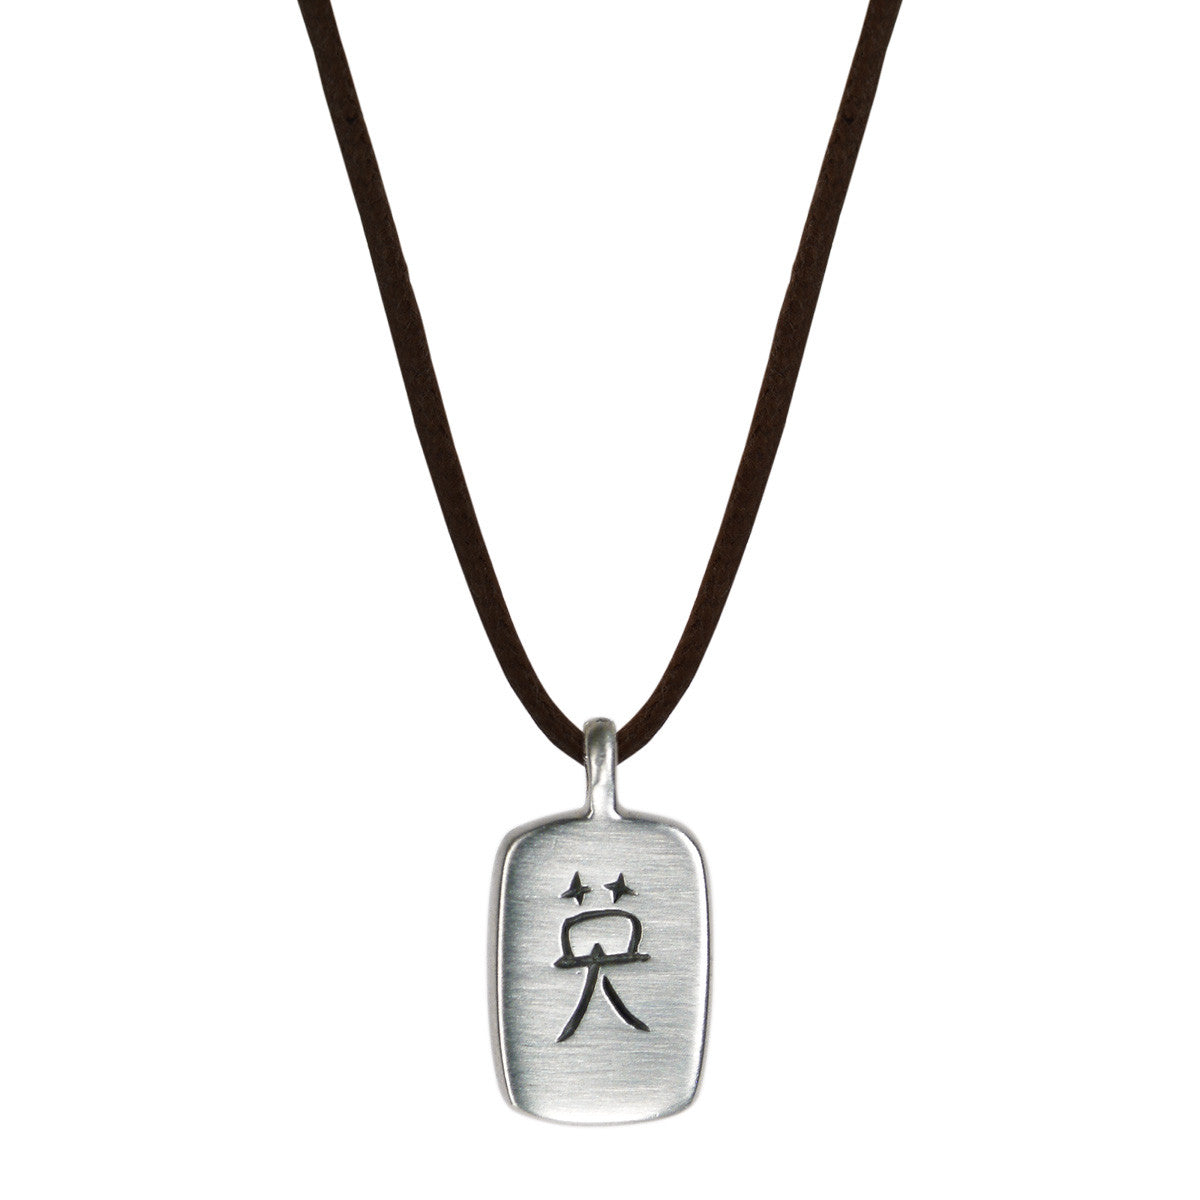 Men's Sterling Silver Courage Pendant on Black Cord